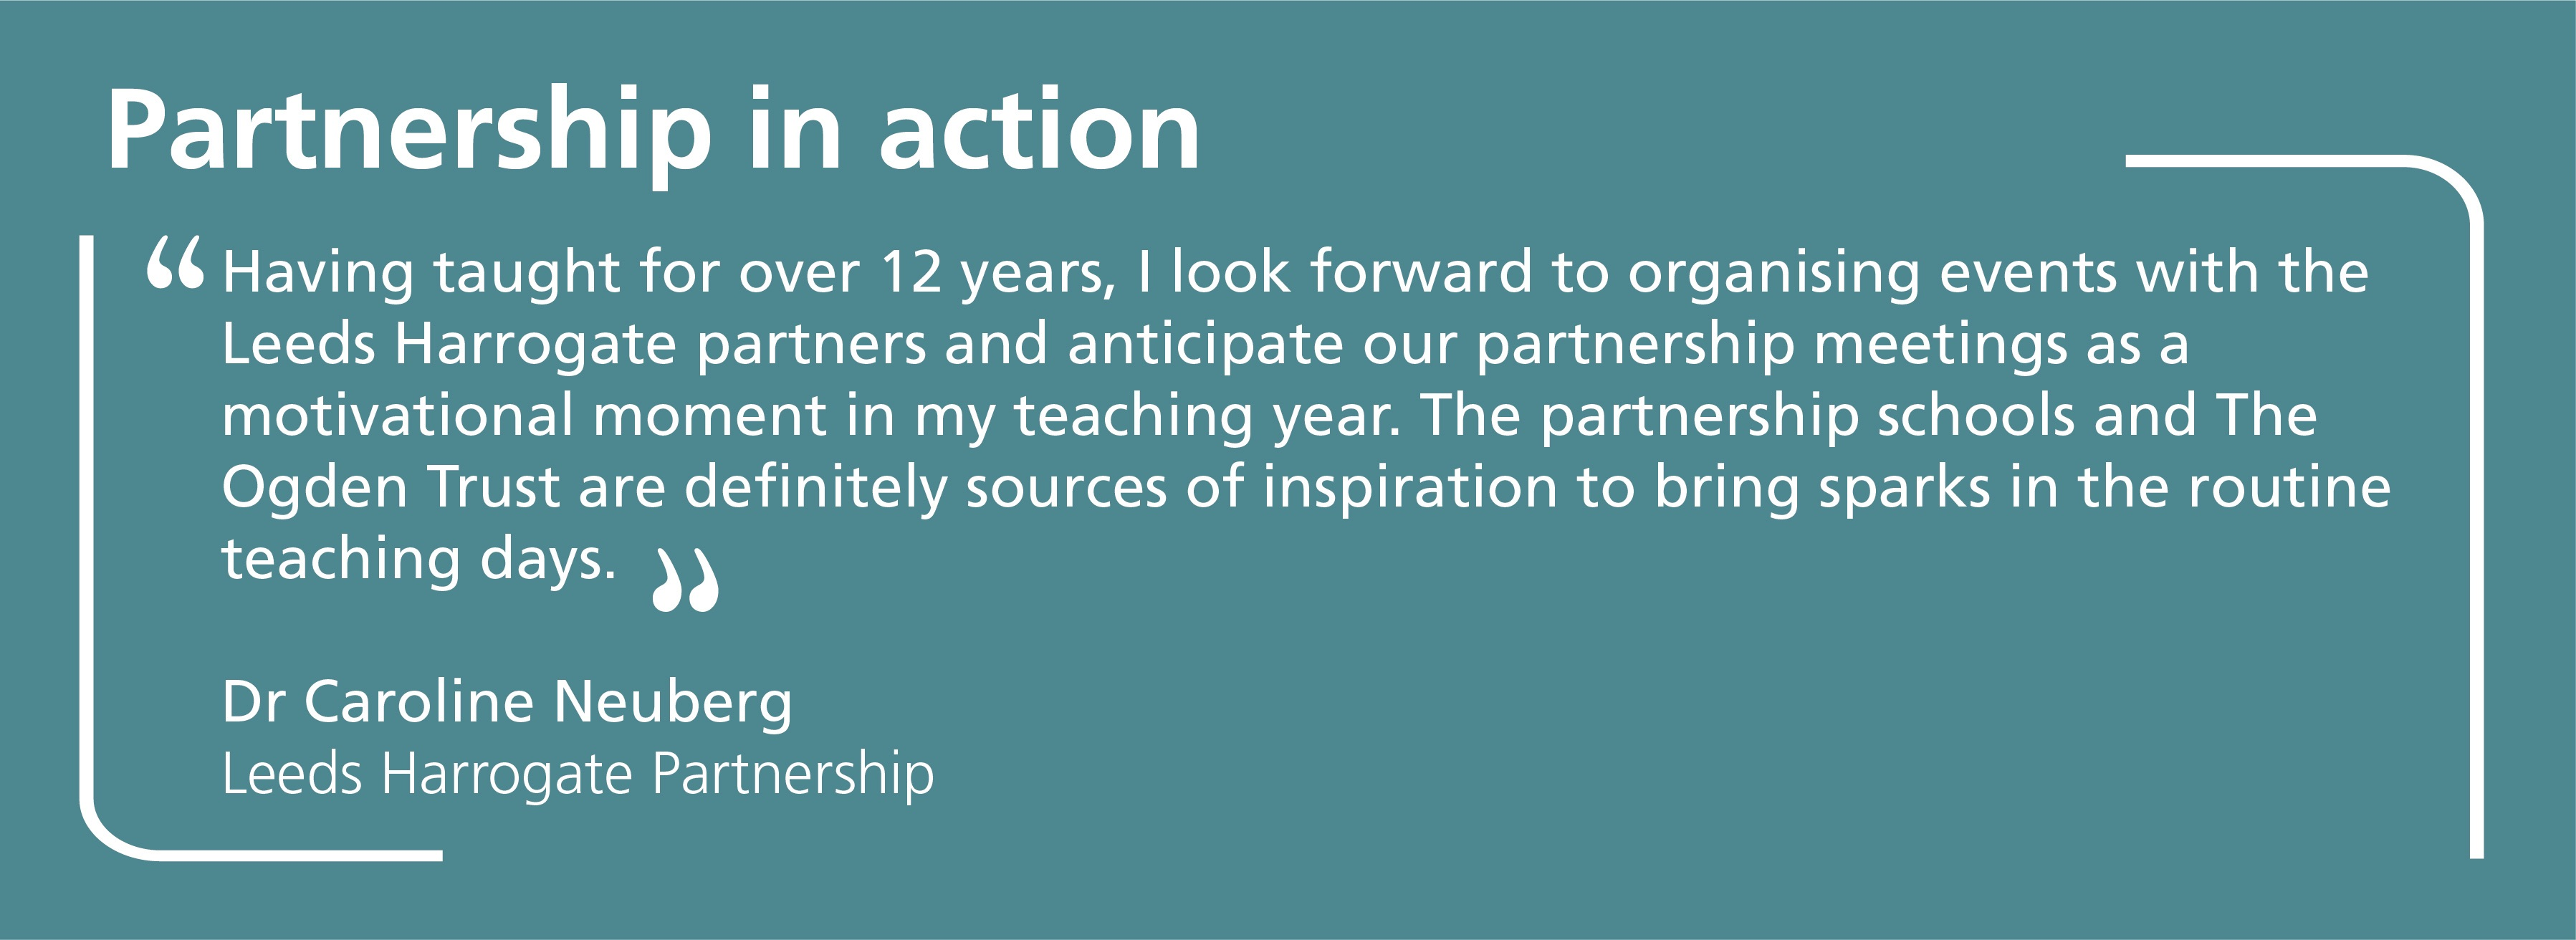 Having taught for over 12 years, I look forward to organising events with the Leeds Harrogate partners and anticipate our partnership meetings as a motivational moment in my teaching year. The partnership schools and The Ogden Trust are definitely sources of inspiration to bring sparks in the routine teaching days